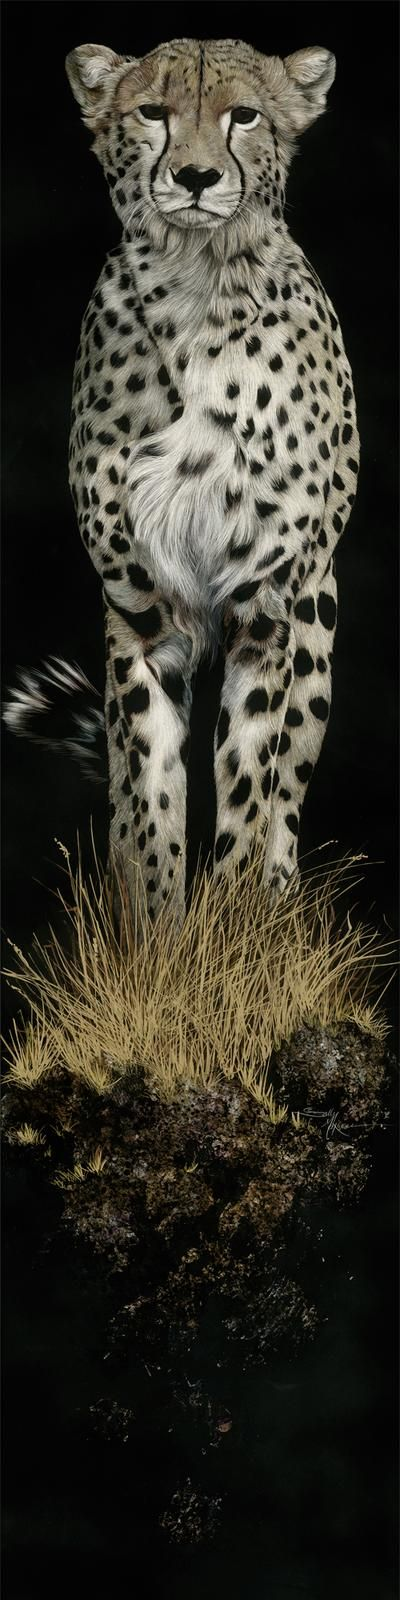 GREAT Cheetah beauty..! This is about my favorite animal portrait!